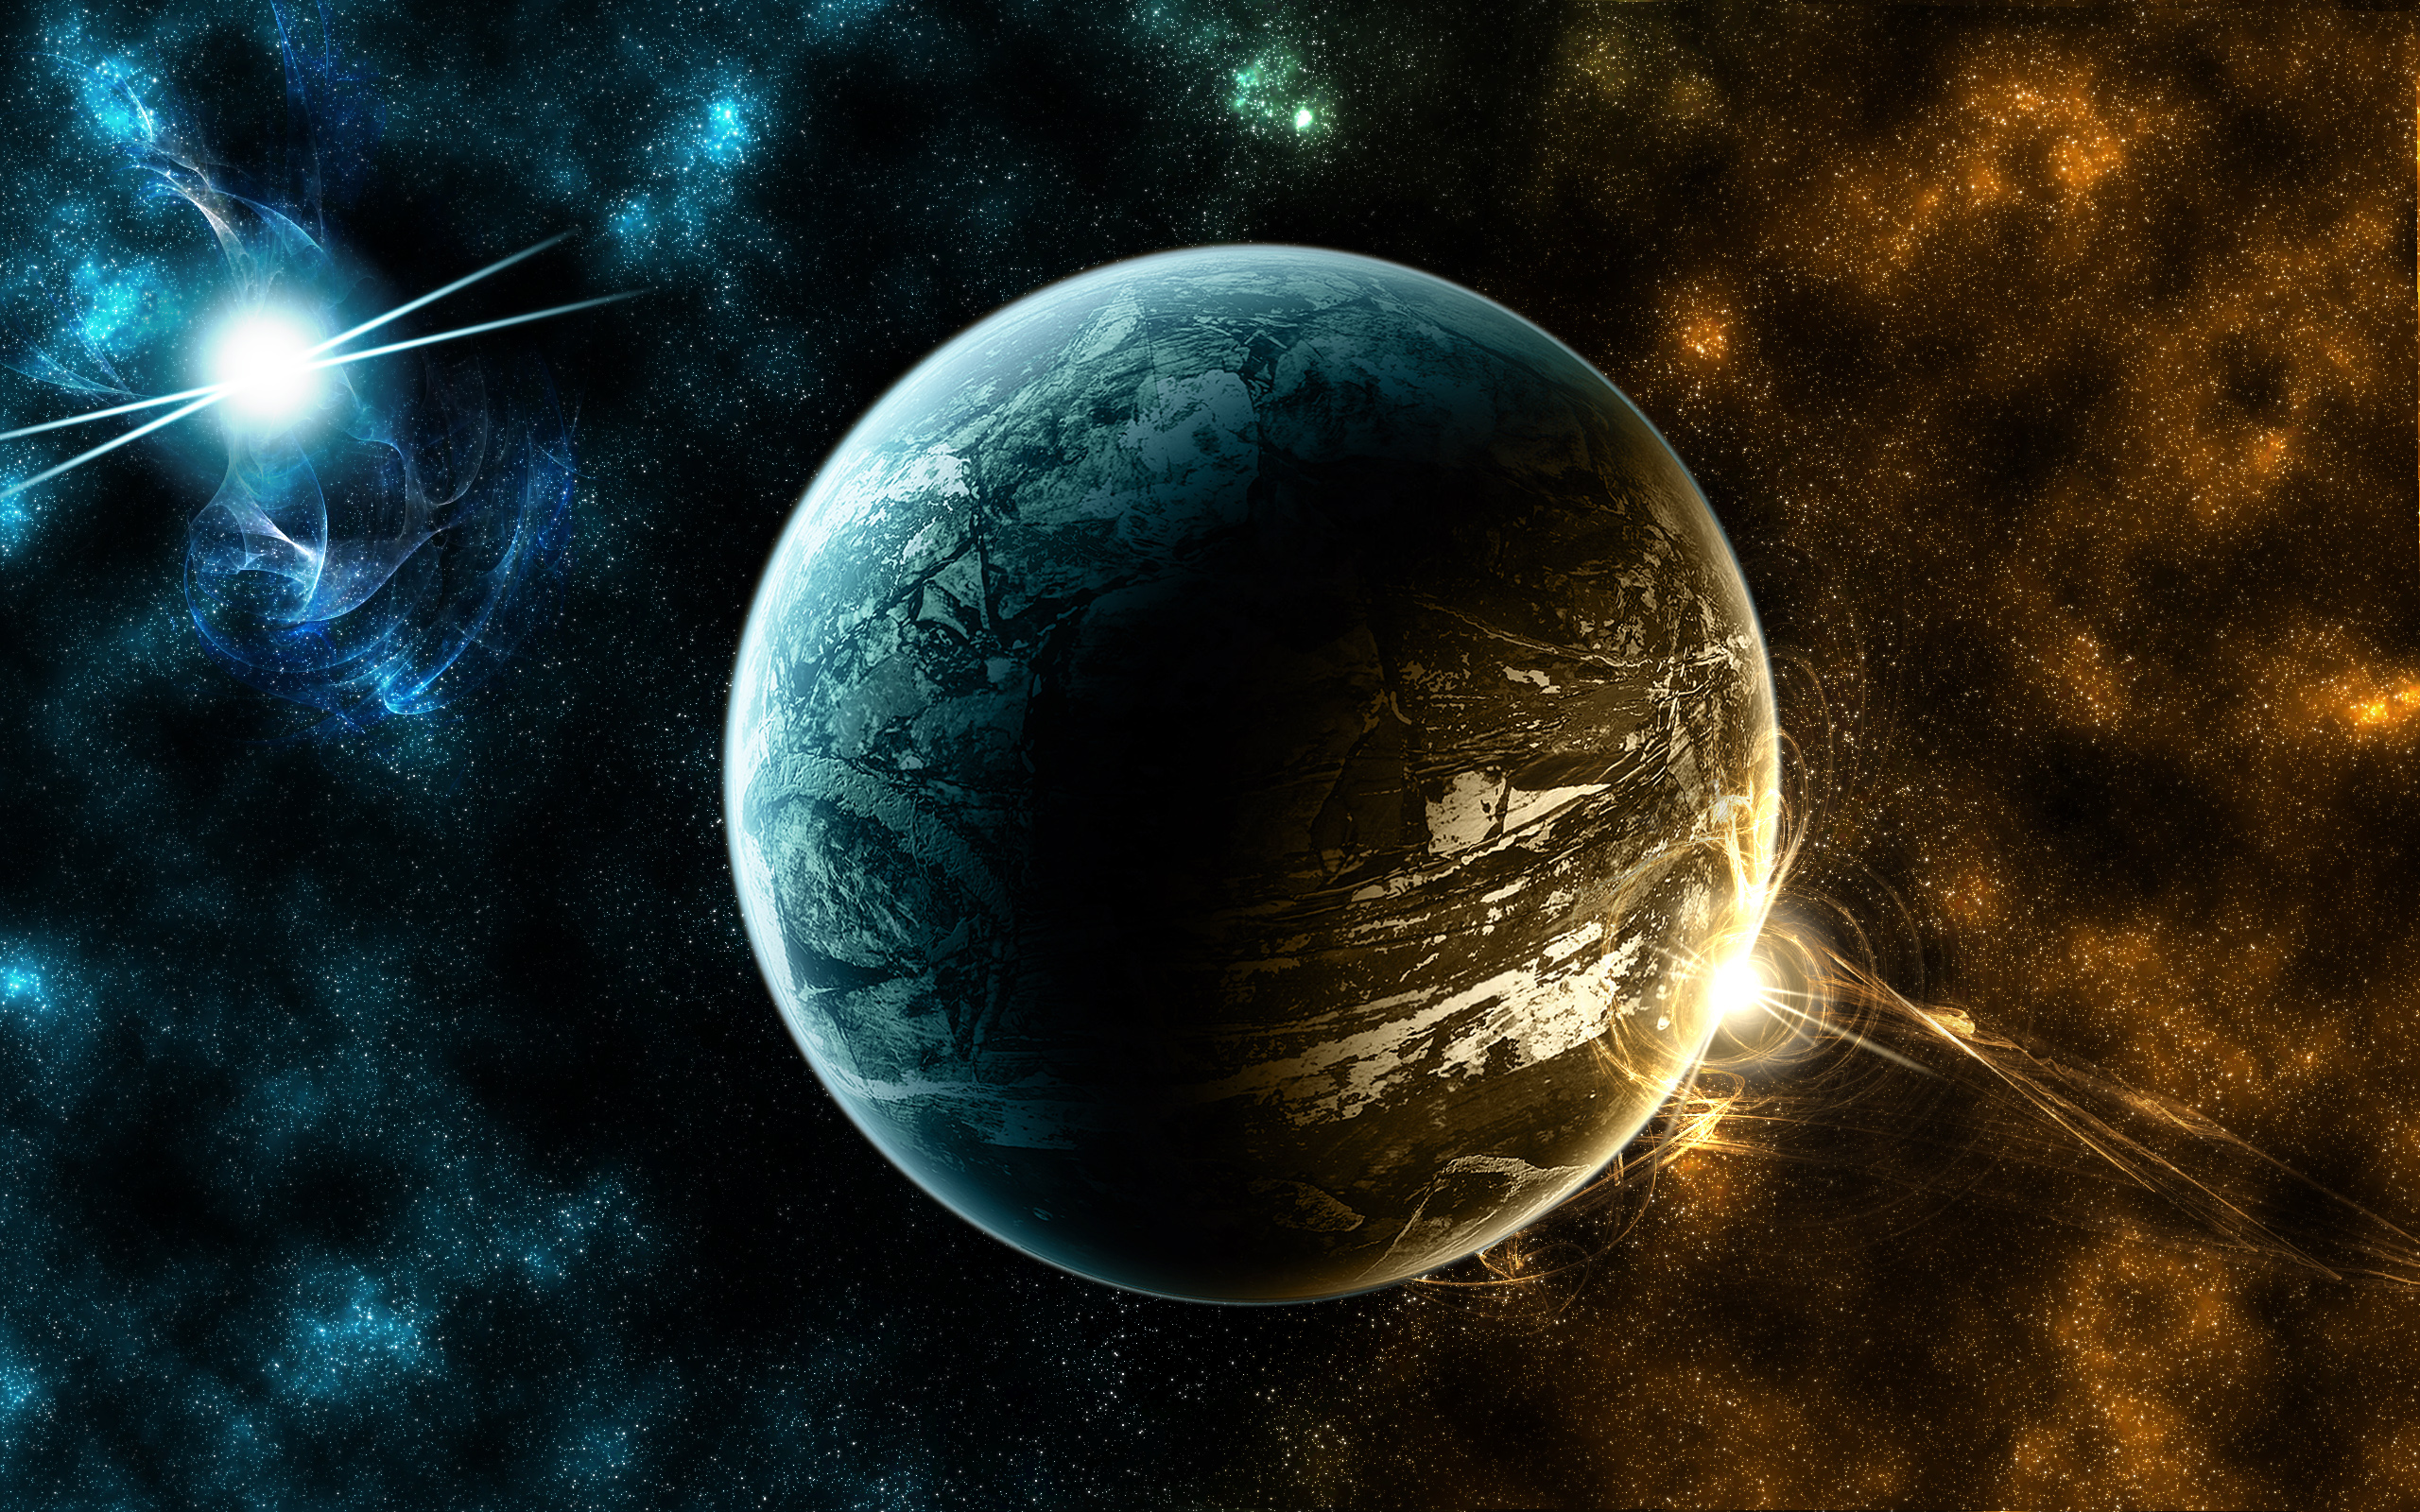 33 Free HD Universe Backgrounds For Desktops, Laptops and ...